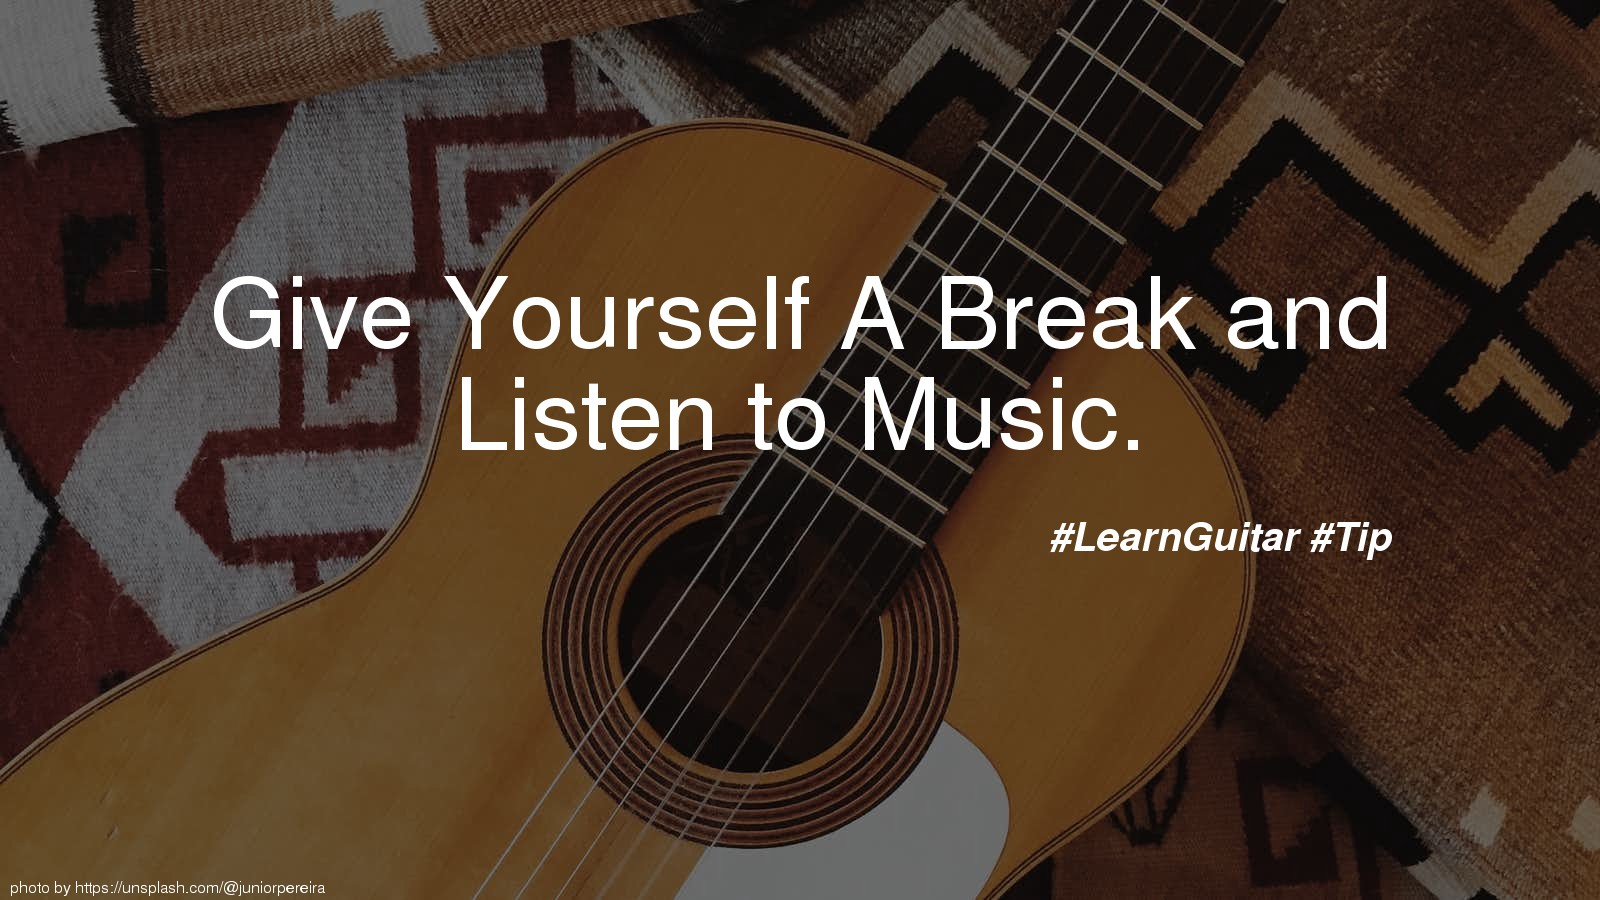 Give Yourself A Break and Listen to Music.